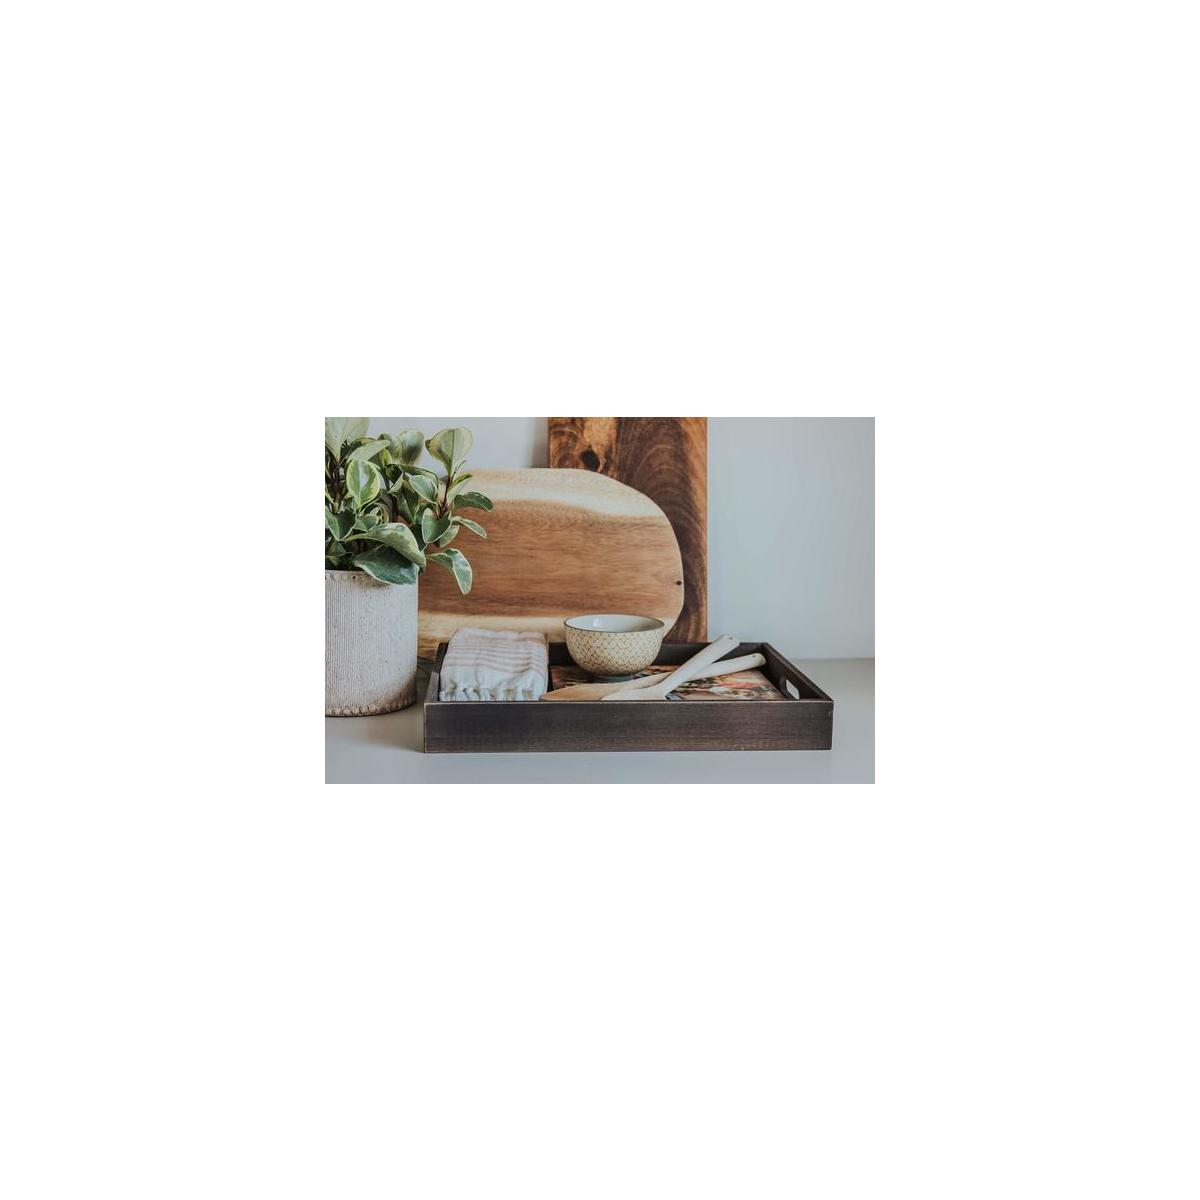 Wooden Stylish Ottoman Serving Tray | Cutout Handles Wood | Coffee Table | Black and White Fabric Lining | Home Decor | Rustic Decorative | Party serving